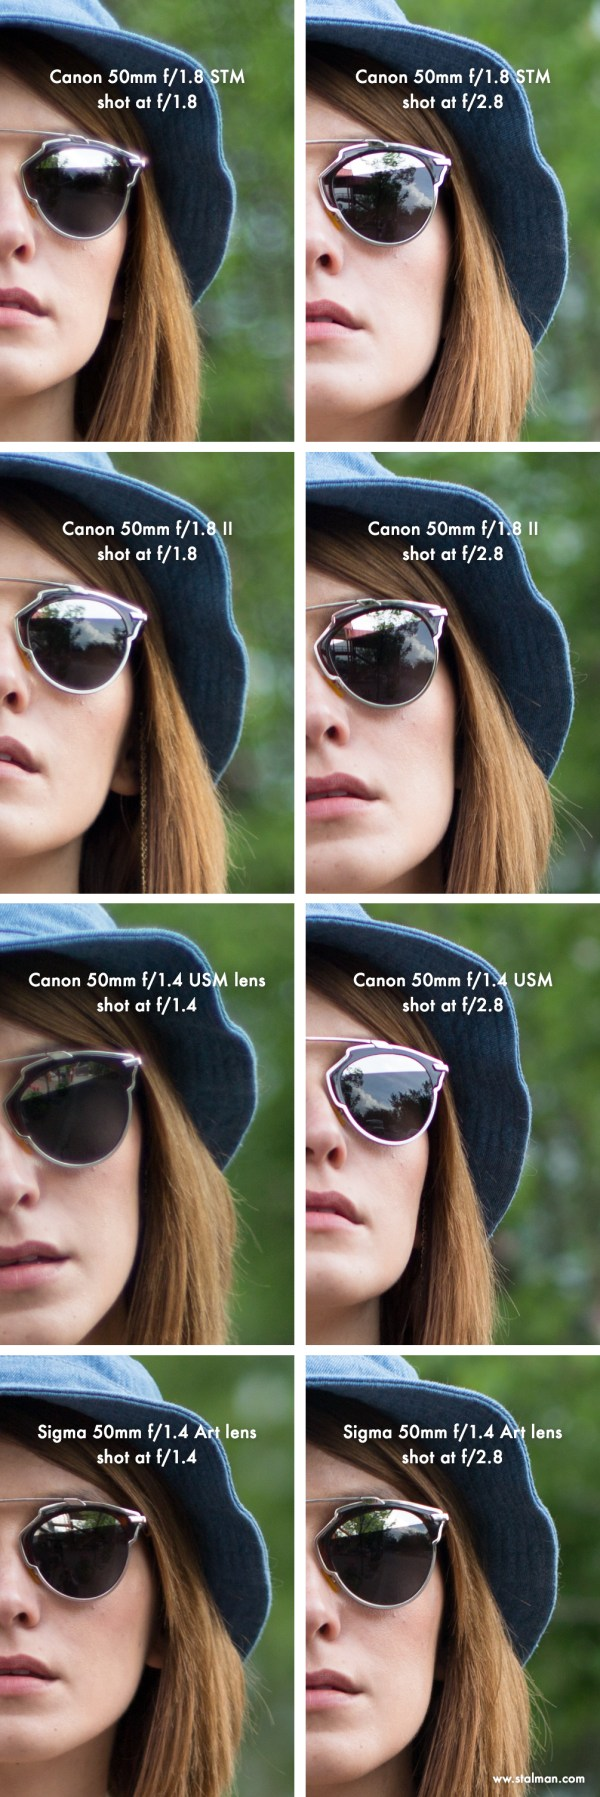 24 - Review of the Canon 50mm f/1.8 STM — Ania & Tyler Stalman